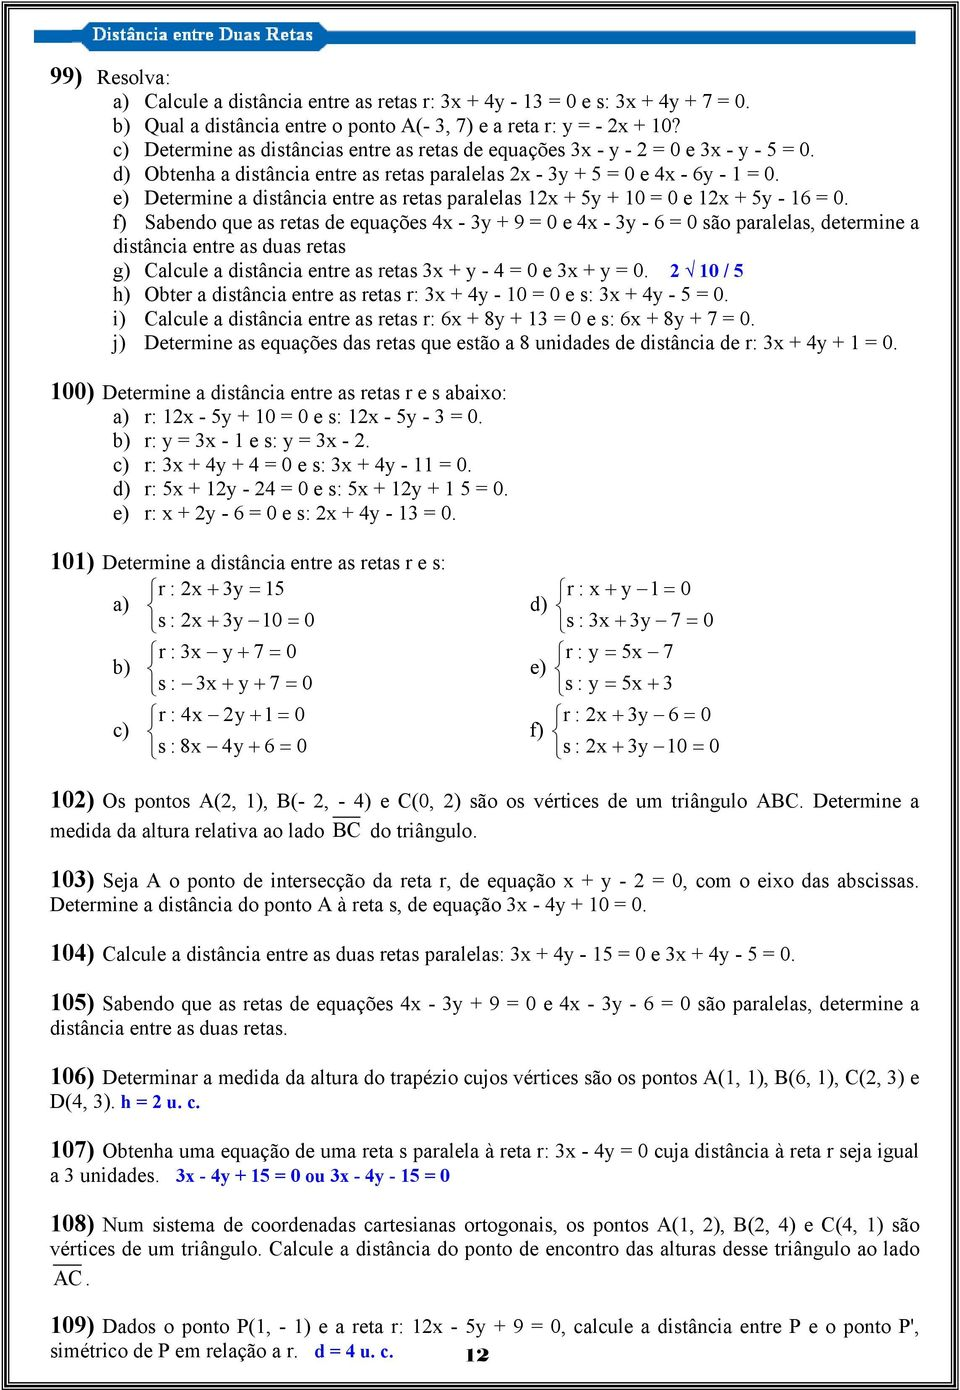 e) Determine a distância entre as retas paralelas 1x + 5y + 10 = 0 e 1x + 5y - 16 = 0.